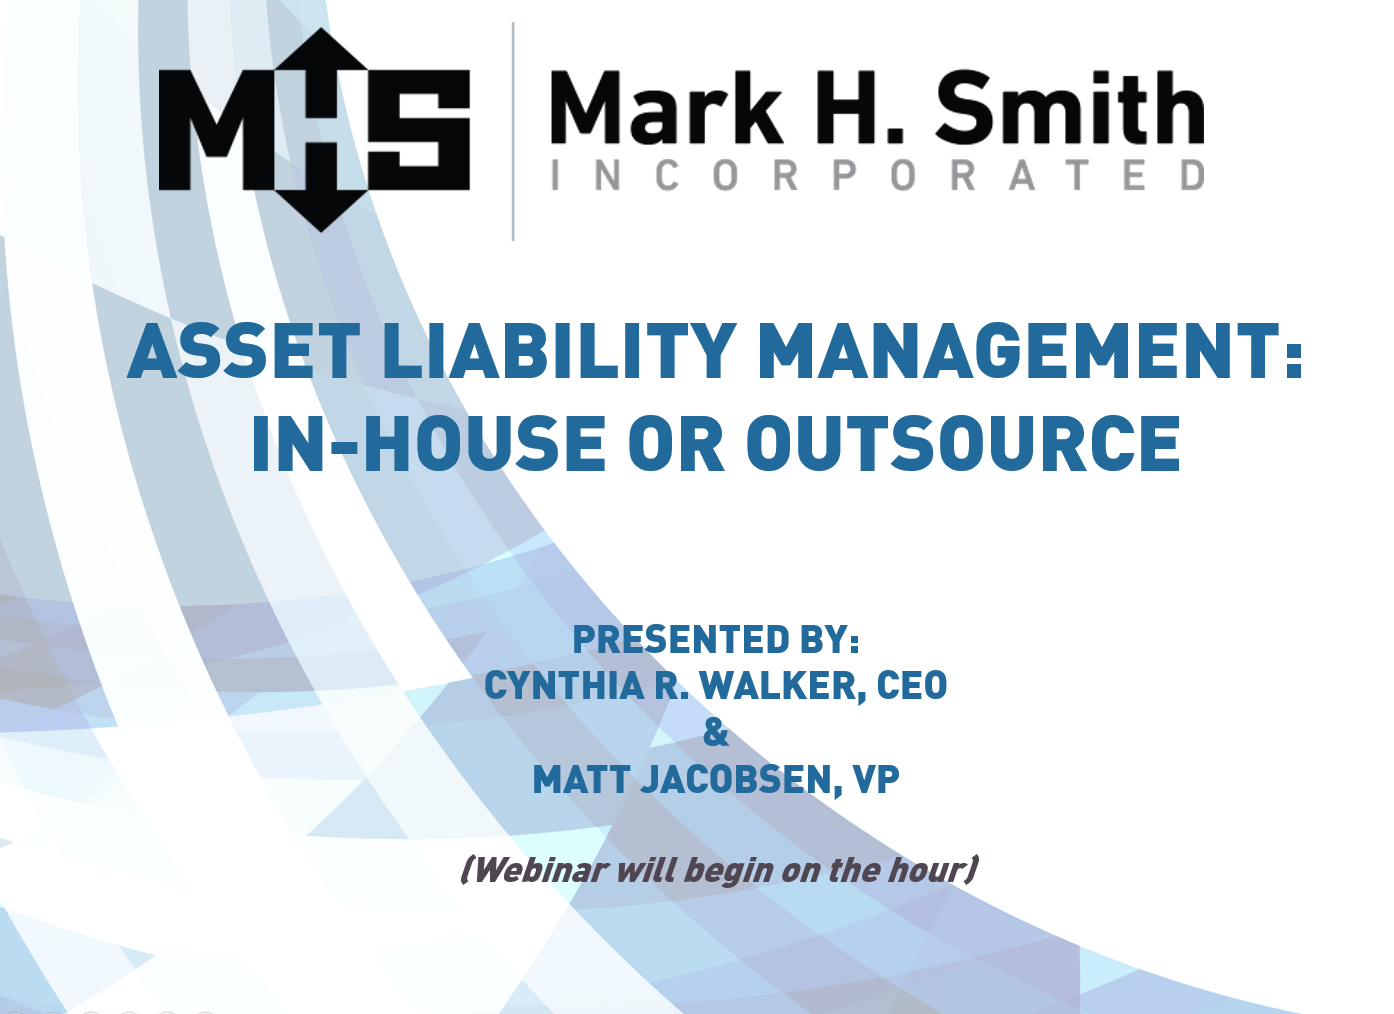 Asset Liability Management: In-House or Outsource